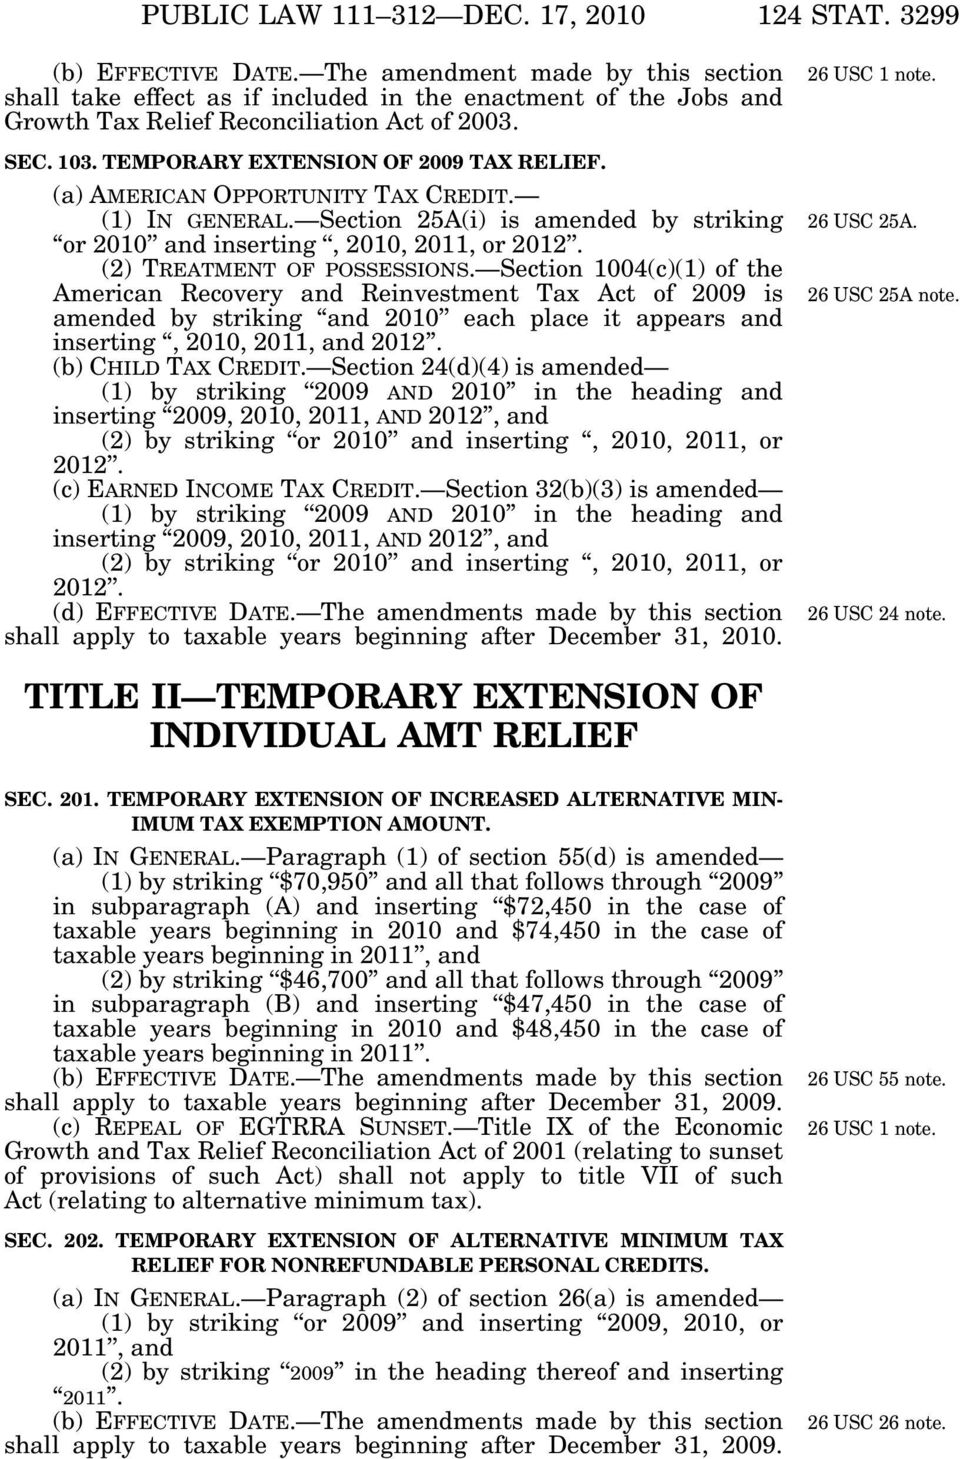 Section 1004(c)(1) of the American Recovery and Reinvestment Tax Act of 2009 is amended by striking and 2010 each place it appears and inserting, 2010, 2011, and 2012. (b) CHILD TAX CREDIT.